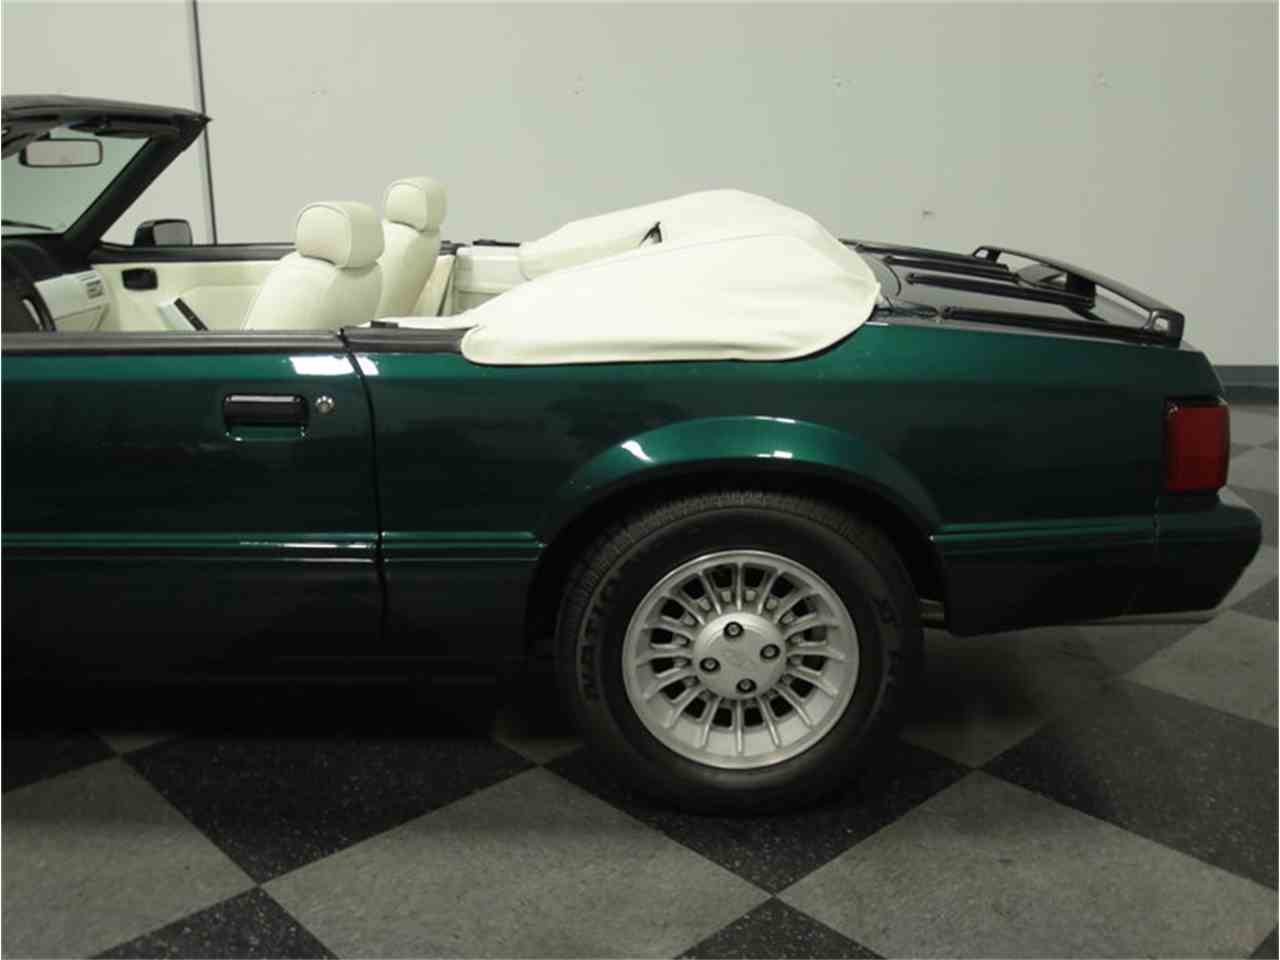 Large Picture of 1990 Mustang LX 7-UP Edition located in Georgia - $12,995.00 Offered by Streetside Classics - Atlanta - IRSA